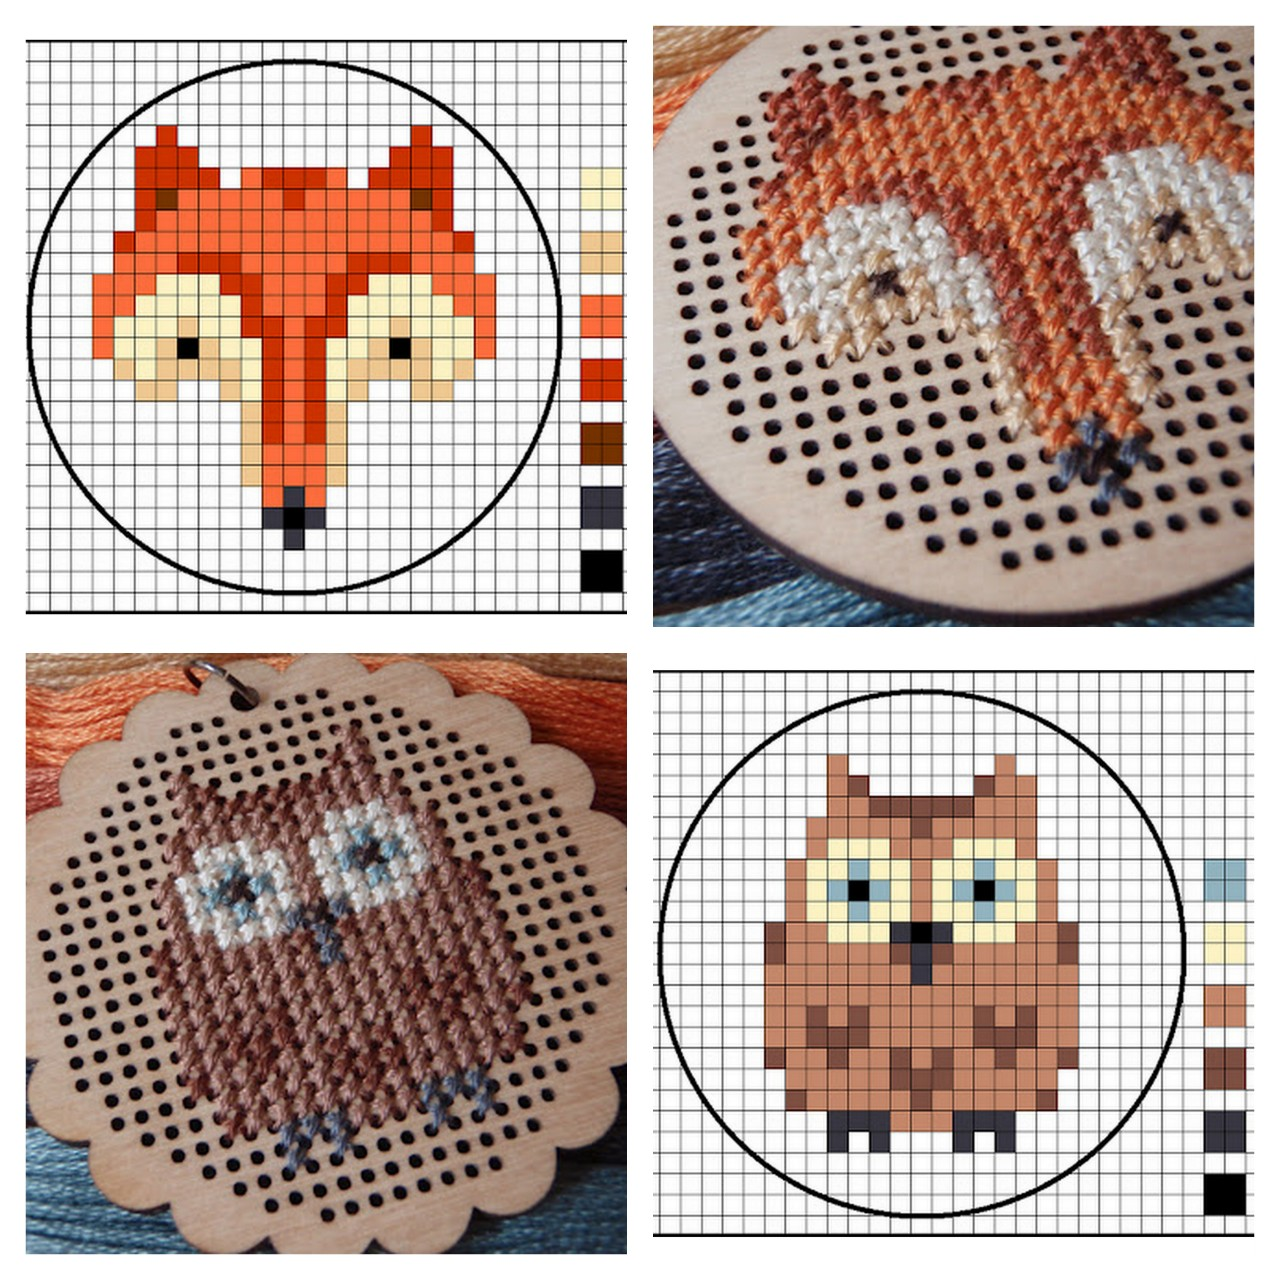 truebluemeandyou:  DIY Easy Fox and Owl Cross Stitch Patterns from Lucykate Crafts… These designs would be really cute as patches. You can buy the rather expensive pendants here. For the most amazing cross stitch generator ever go here. For cross stitch DIYs go here: truebluemeandyou.tumblr.com/tagged/cross-stitch Fox Pattern here. Owl Pattern here.